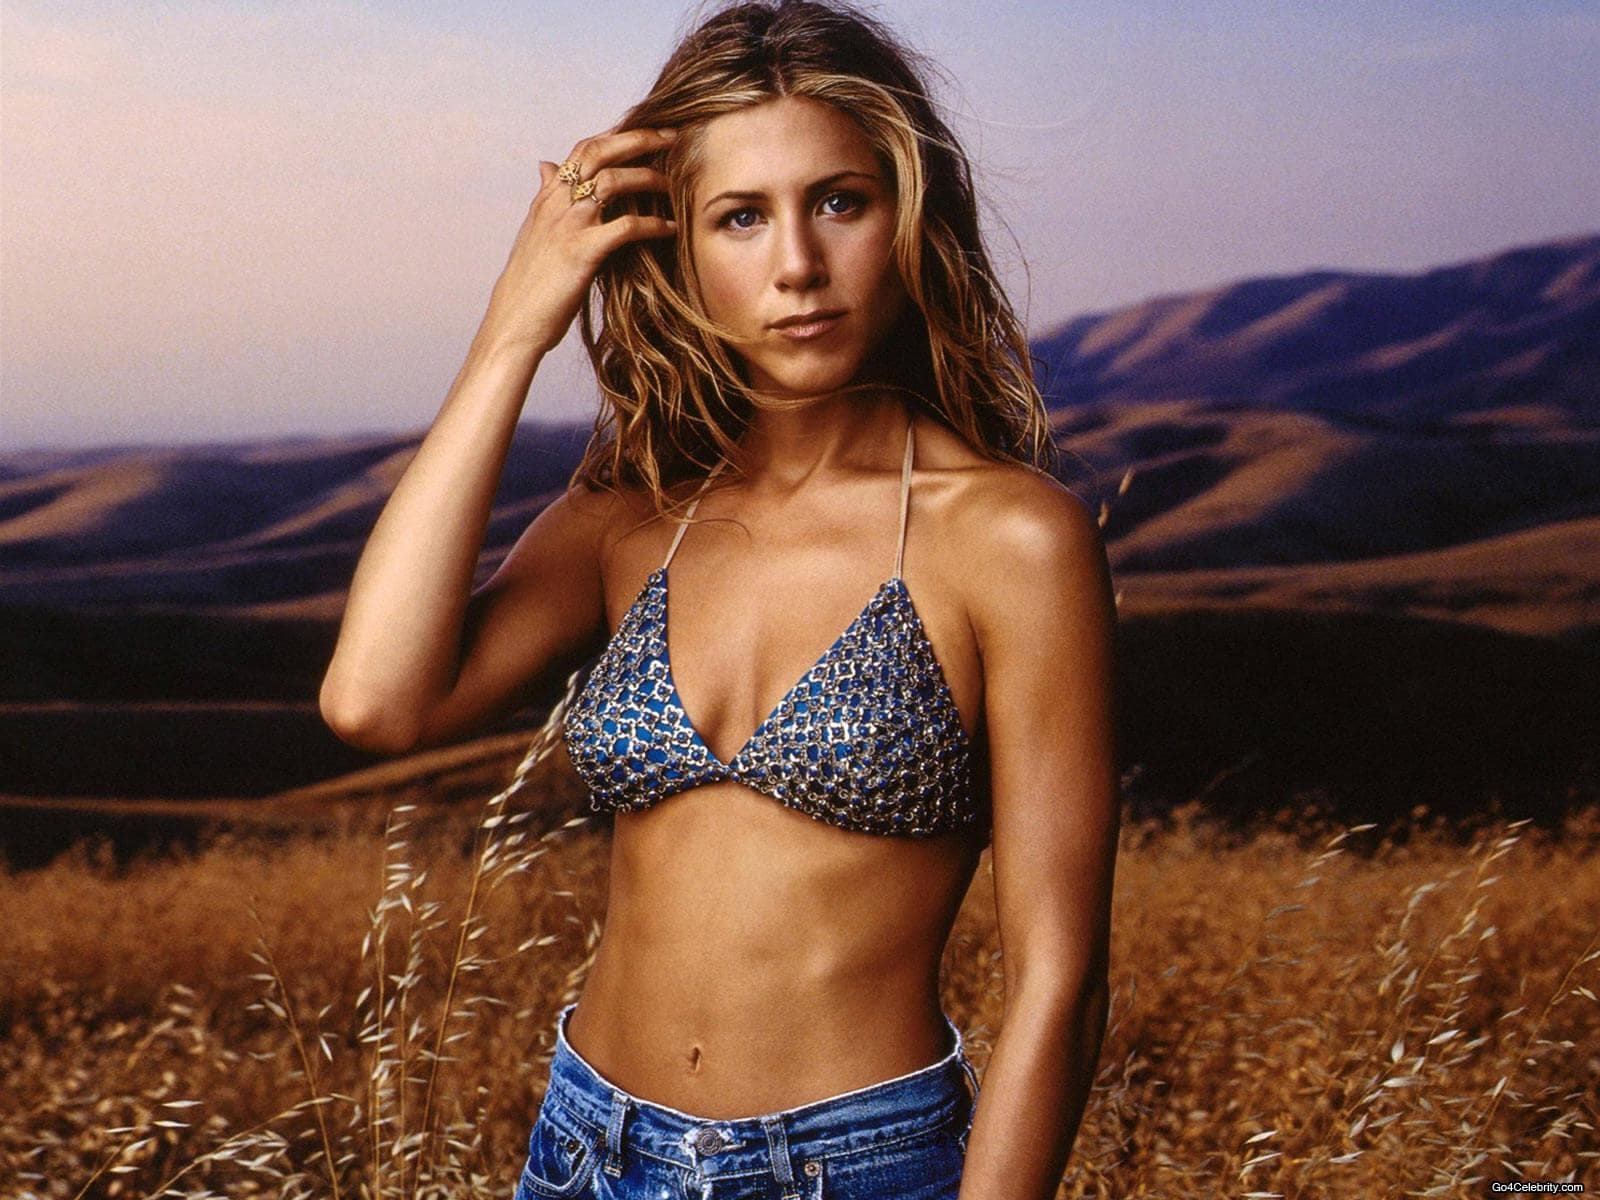 61 Hottest Jennifer Aniston Bikini Pictures Unveil Her Sexy Ass And Hour-Glass Figure  Best Of Comic Books-2596